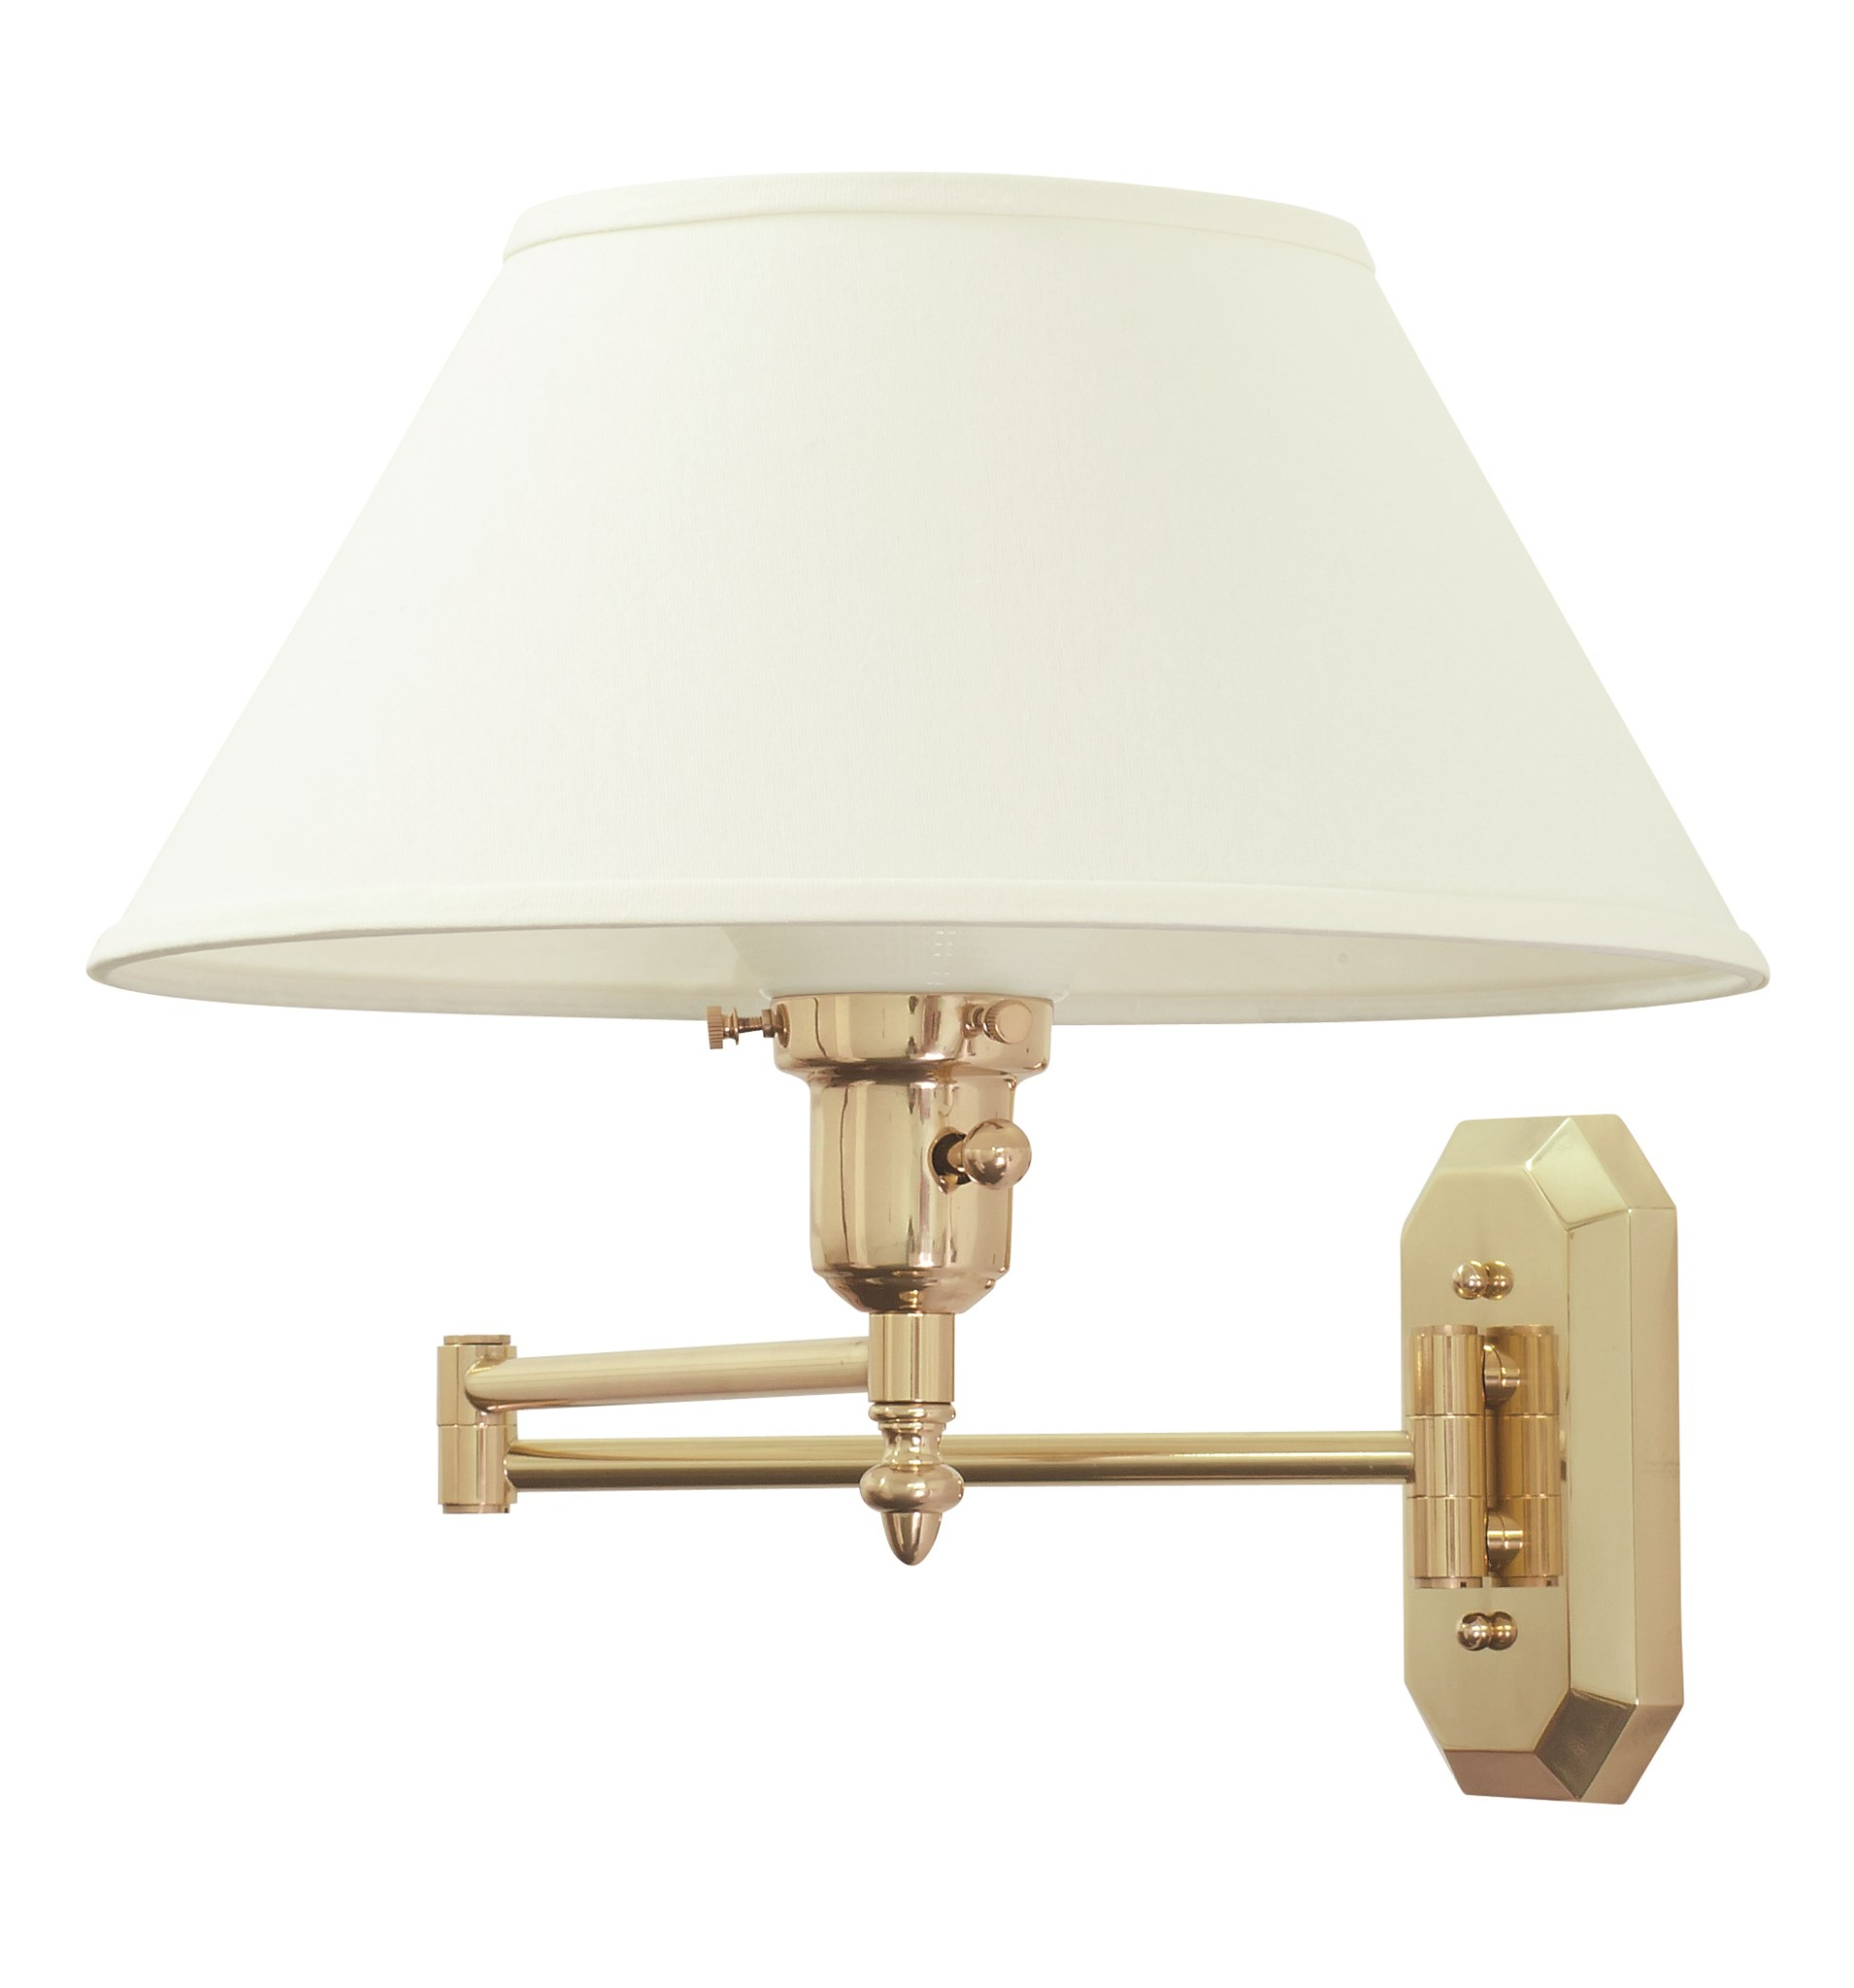 Arm Lamp House Of Troy Home Office Single Light Wall Swing Arm Lamp In A Polished Brass Finish